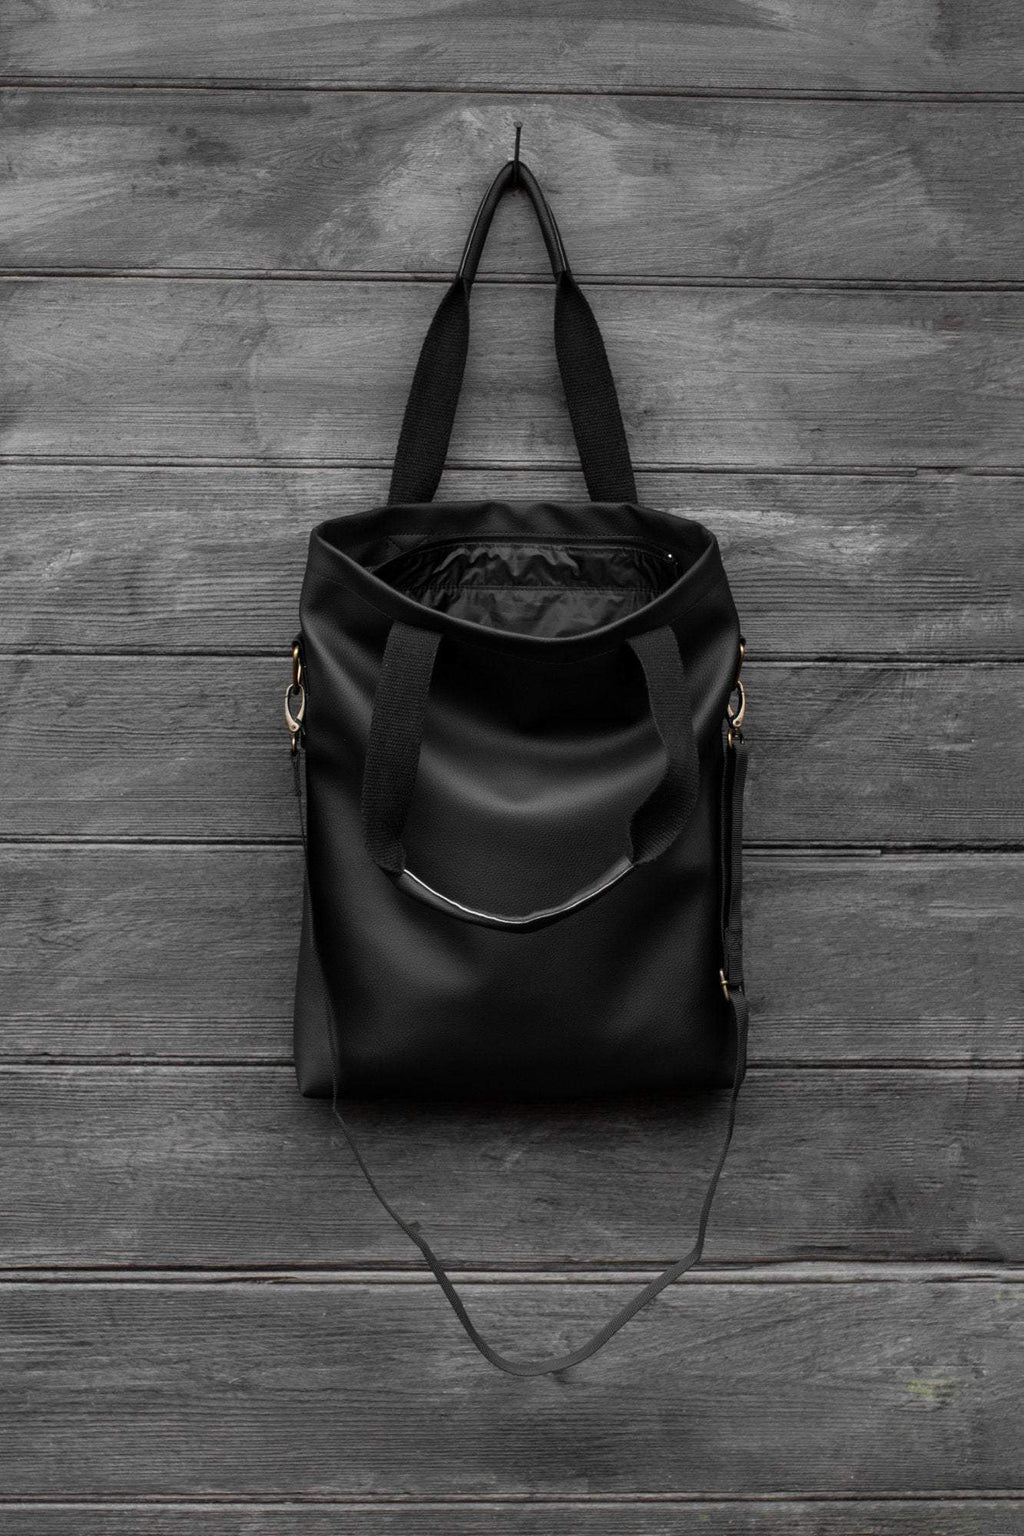 Handmade Black Tote Bag